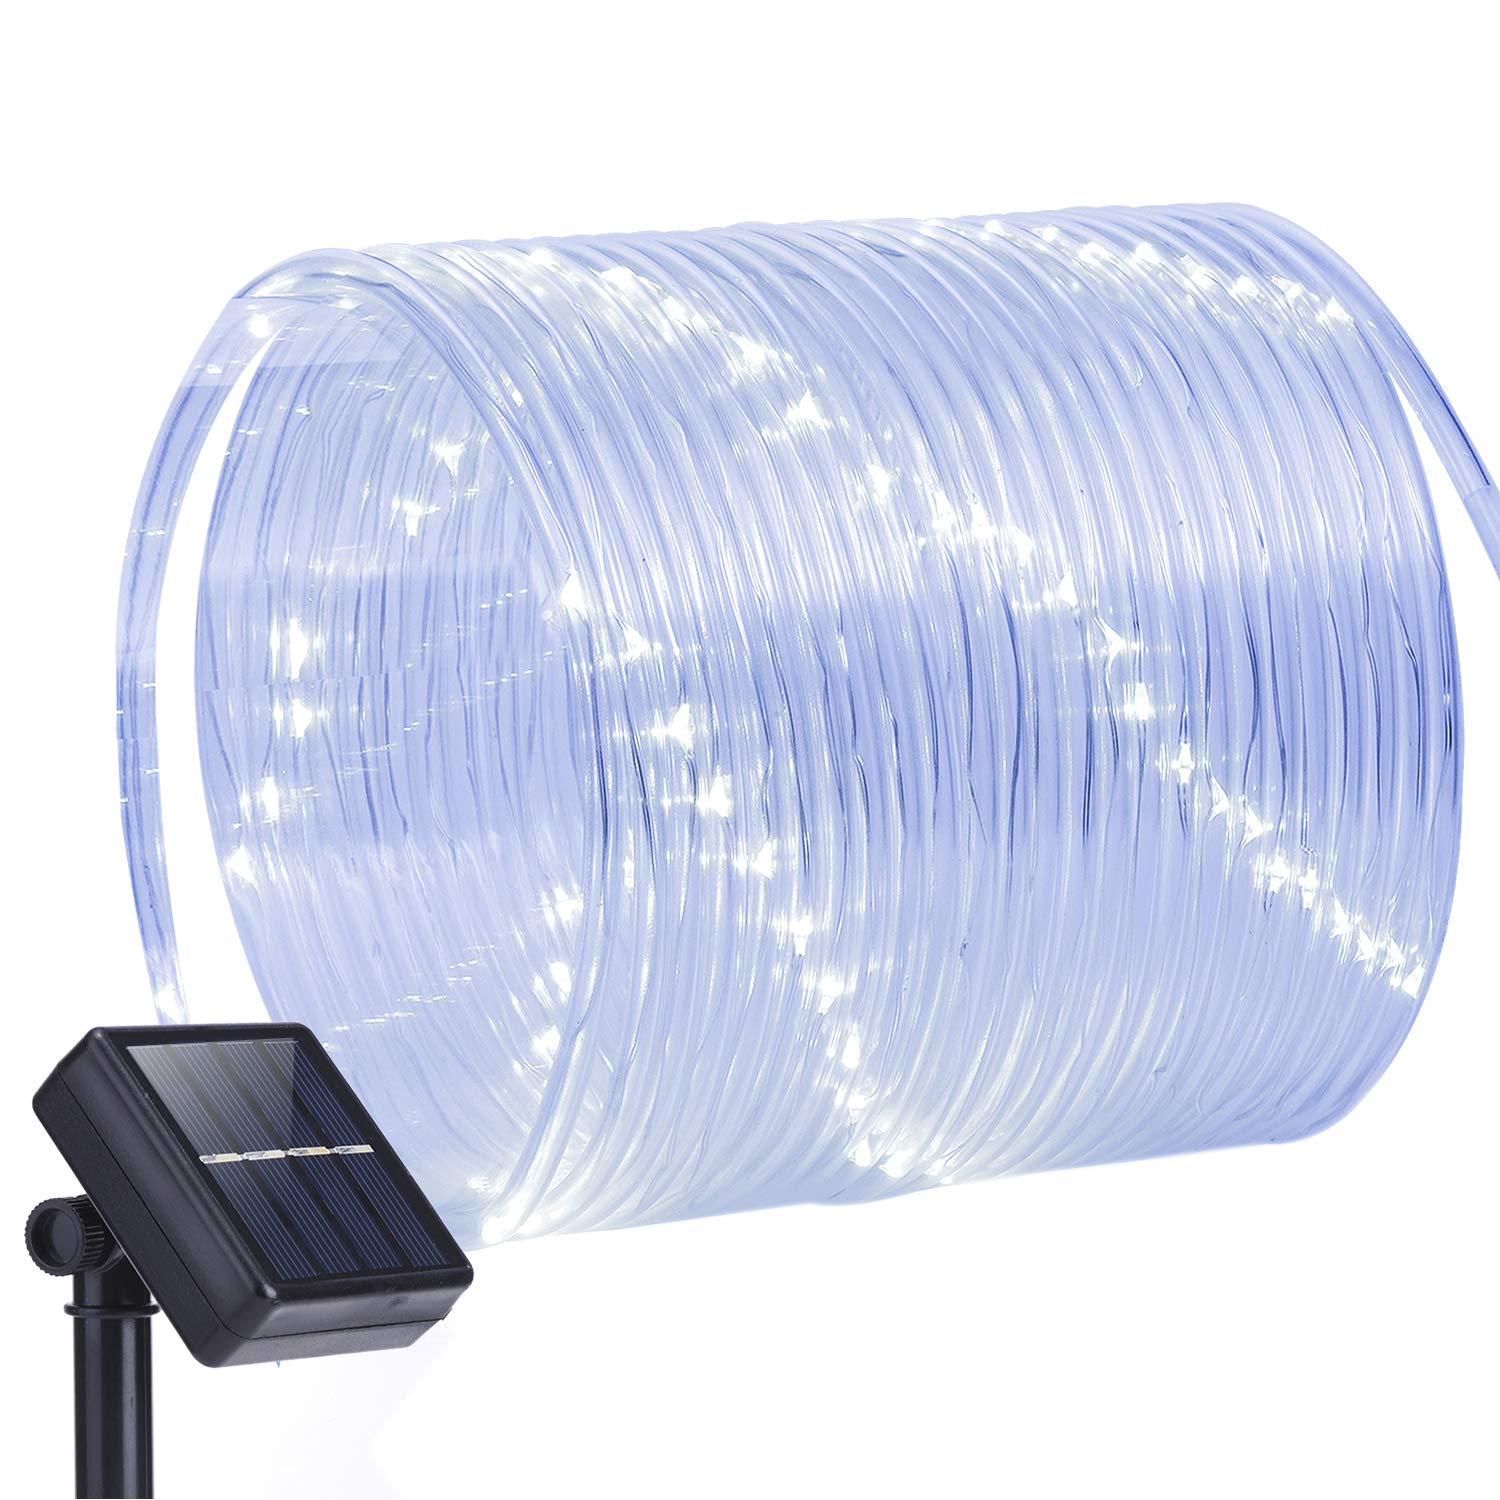 Oak Leaf Outdoor Solar String Lights, 41ft 100LED Solar Rope Lights Outdoor Lighting Rope,Waterproof Copper Wire Rope String Light with Solar Panel for Outdoor Indoor Home Garden Patio Parties